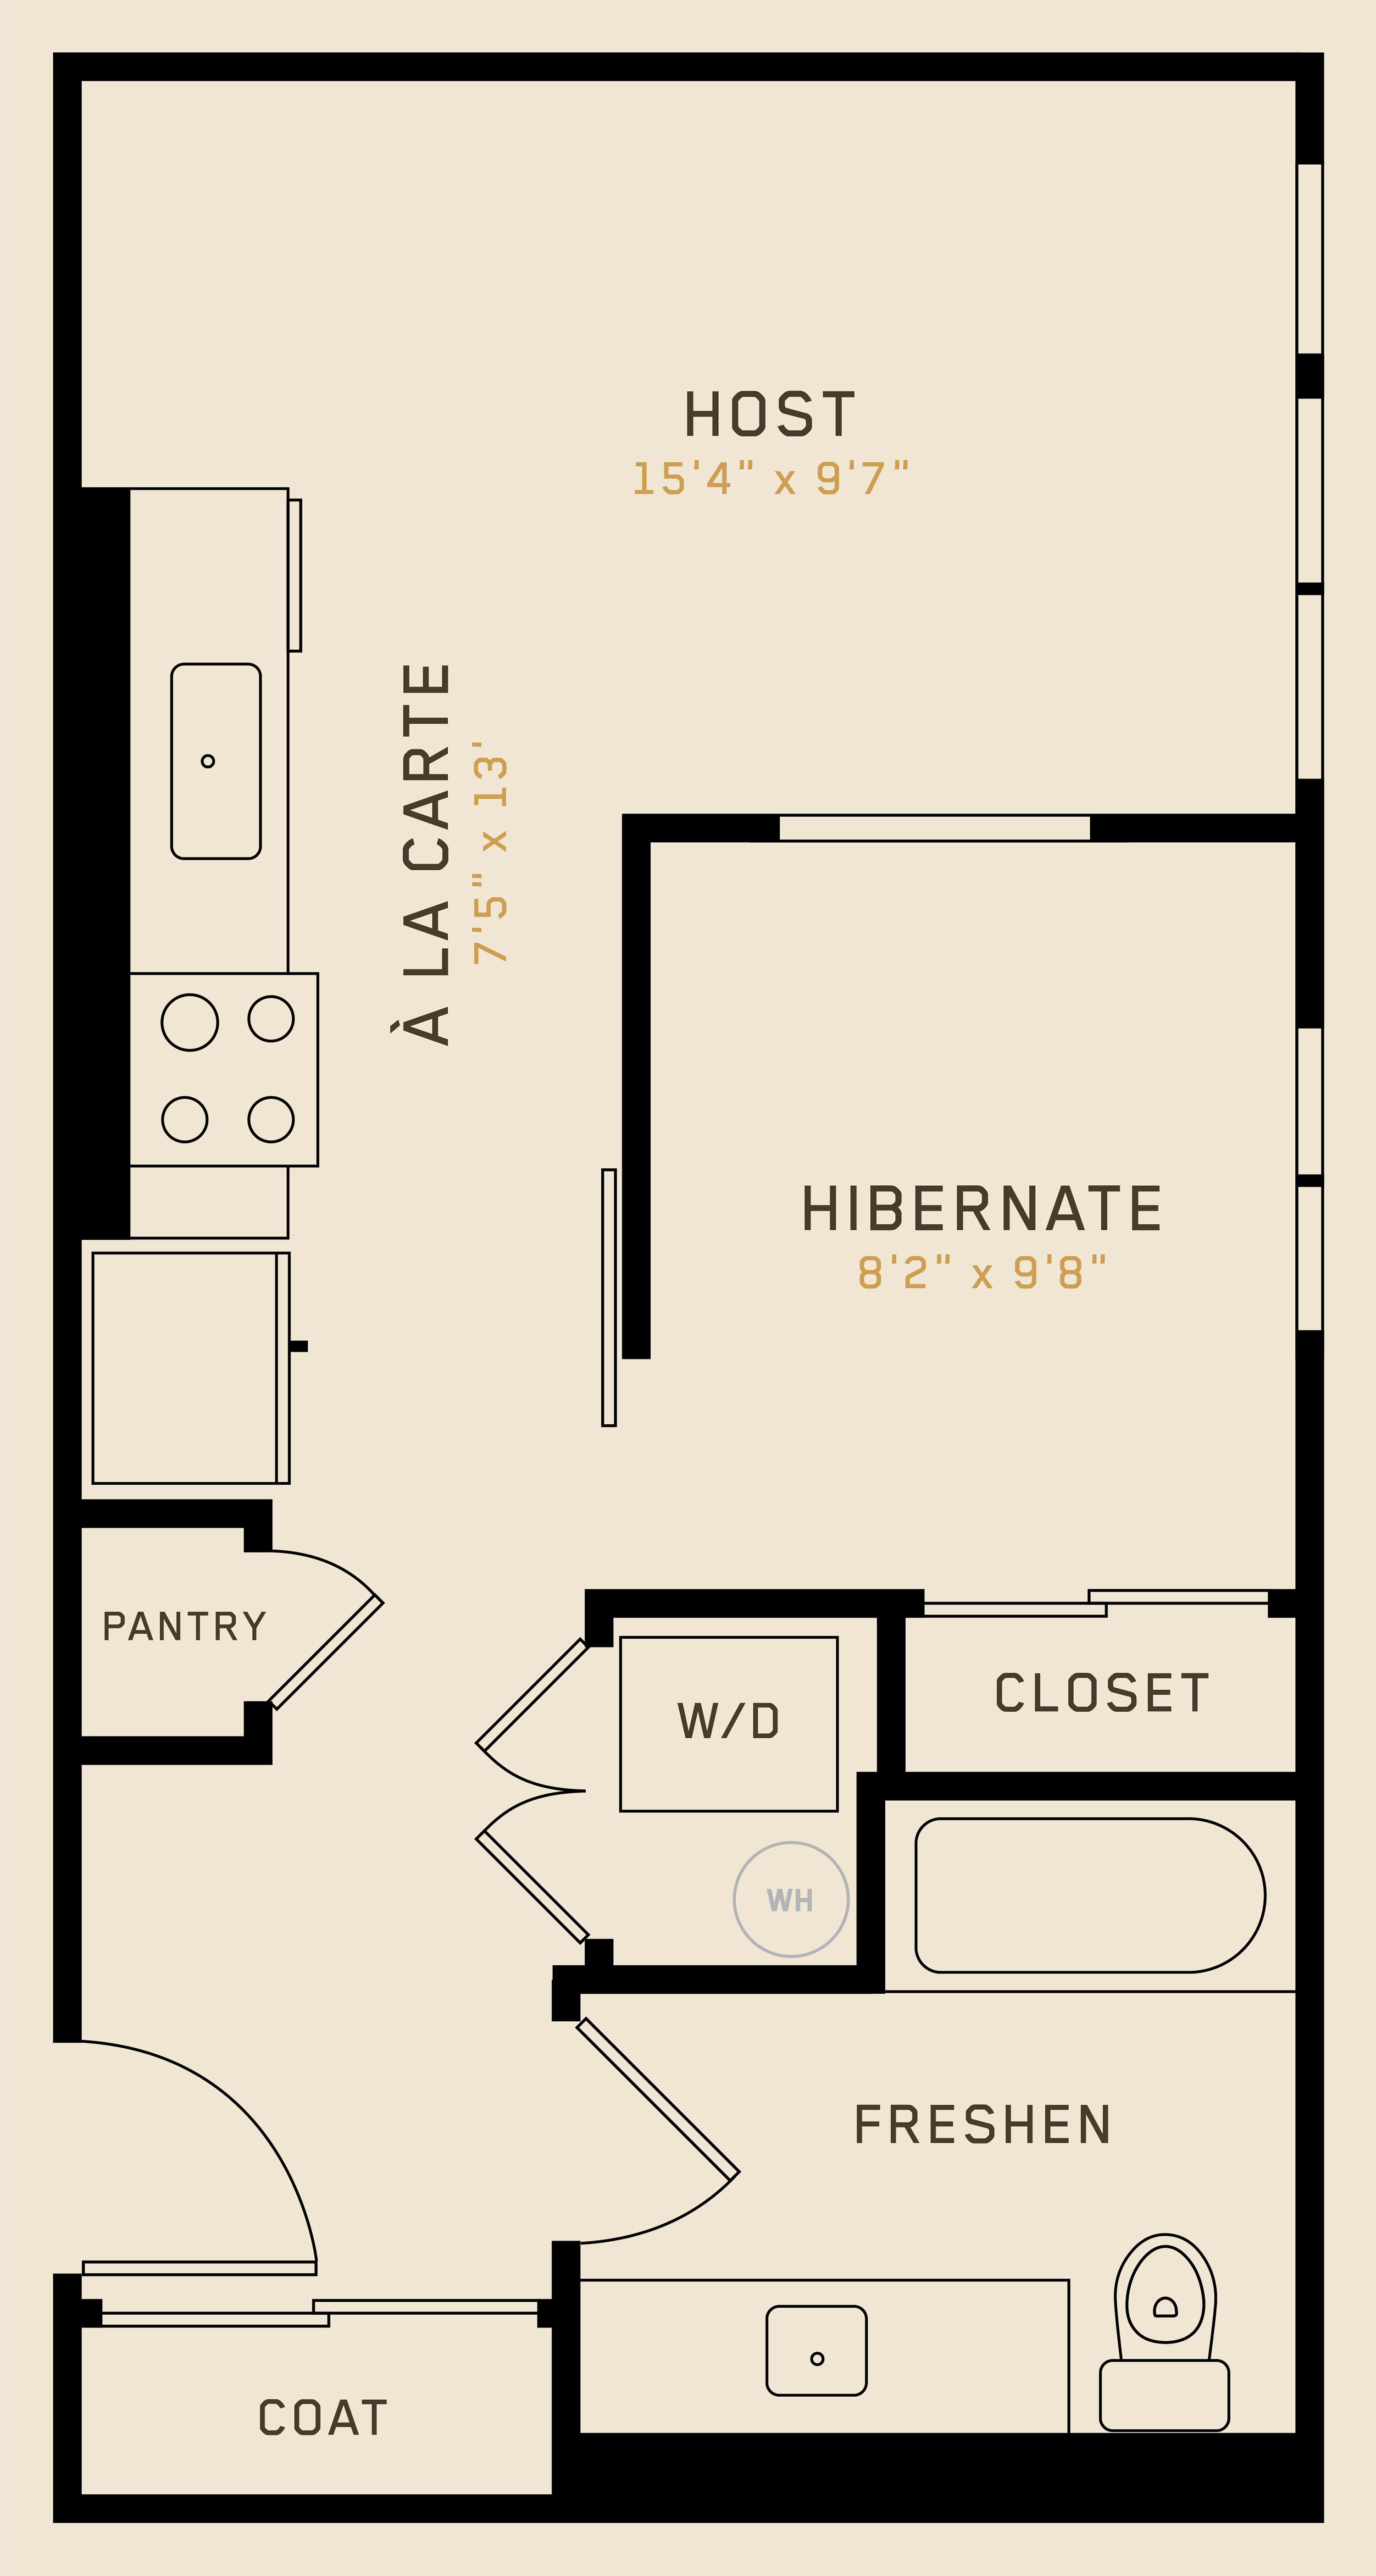 A1C floor plan featuring 1 bedroom, 1 bathroom, and is 496 square fee